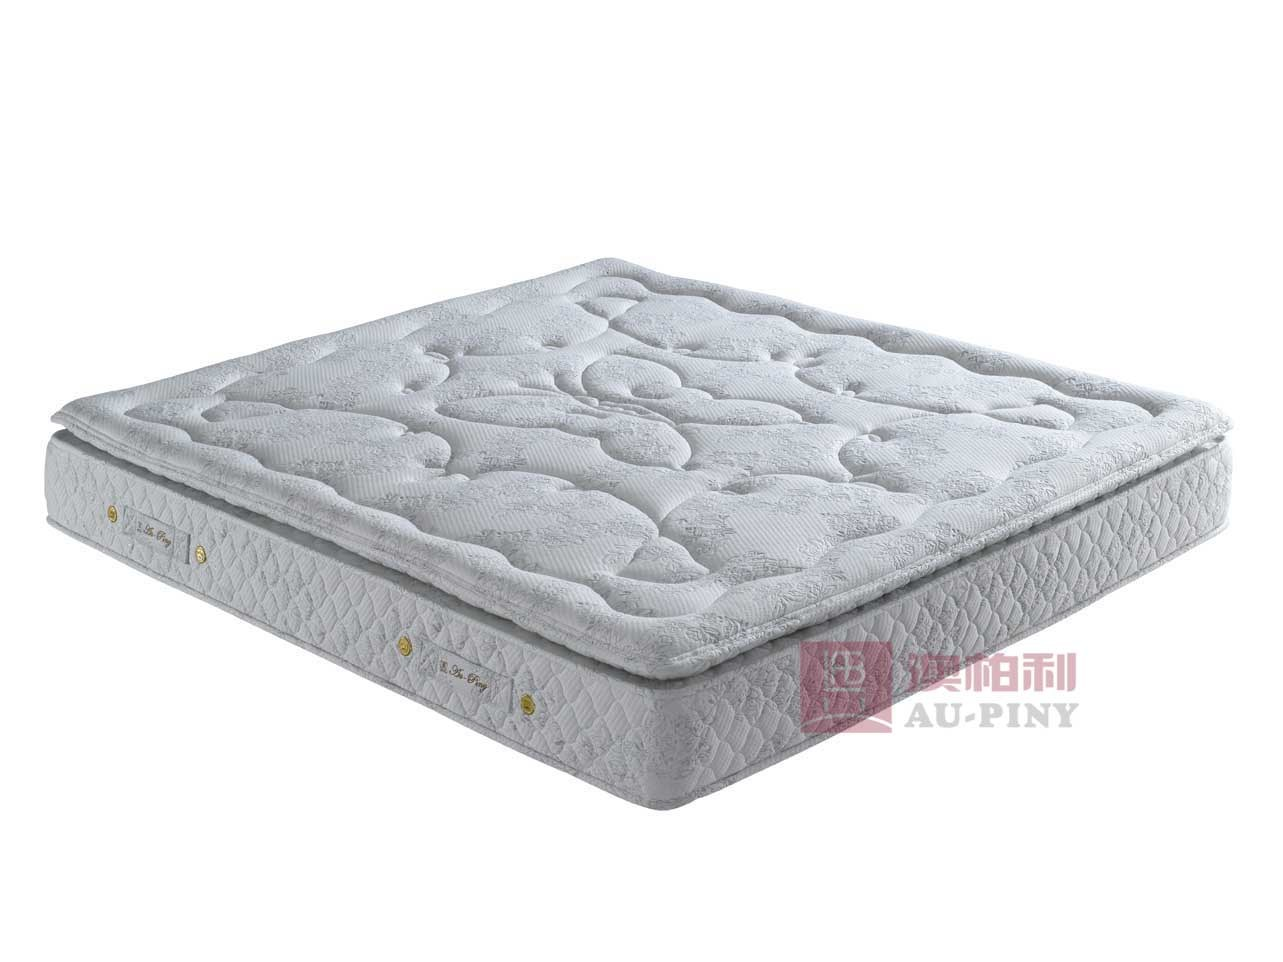 Pocket spring with memory foam and latex pillow top mattress like bed mattress sale Mattress sale memory foam